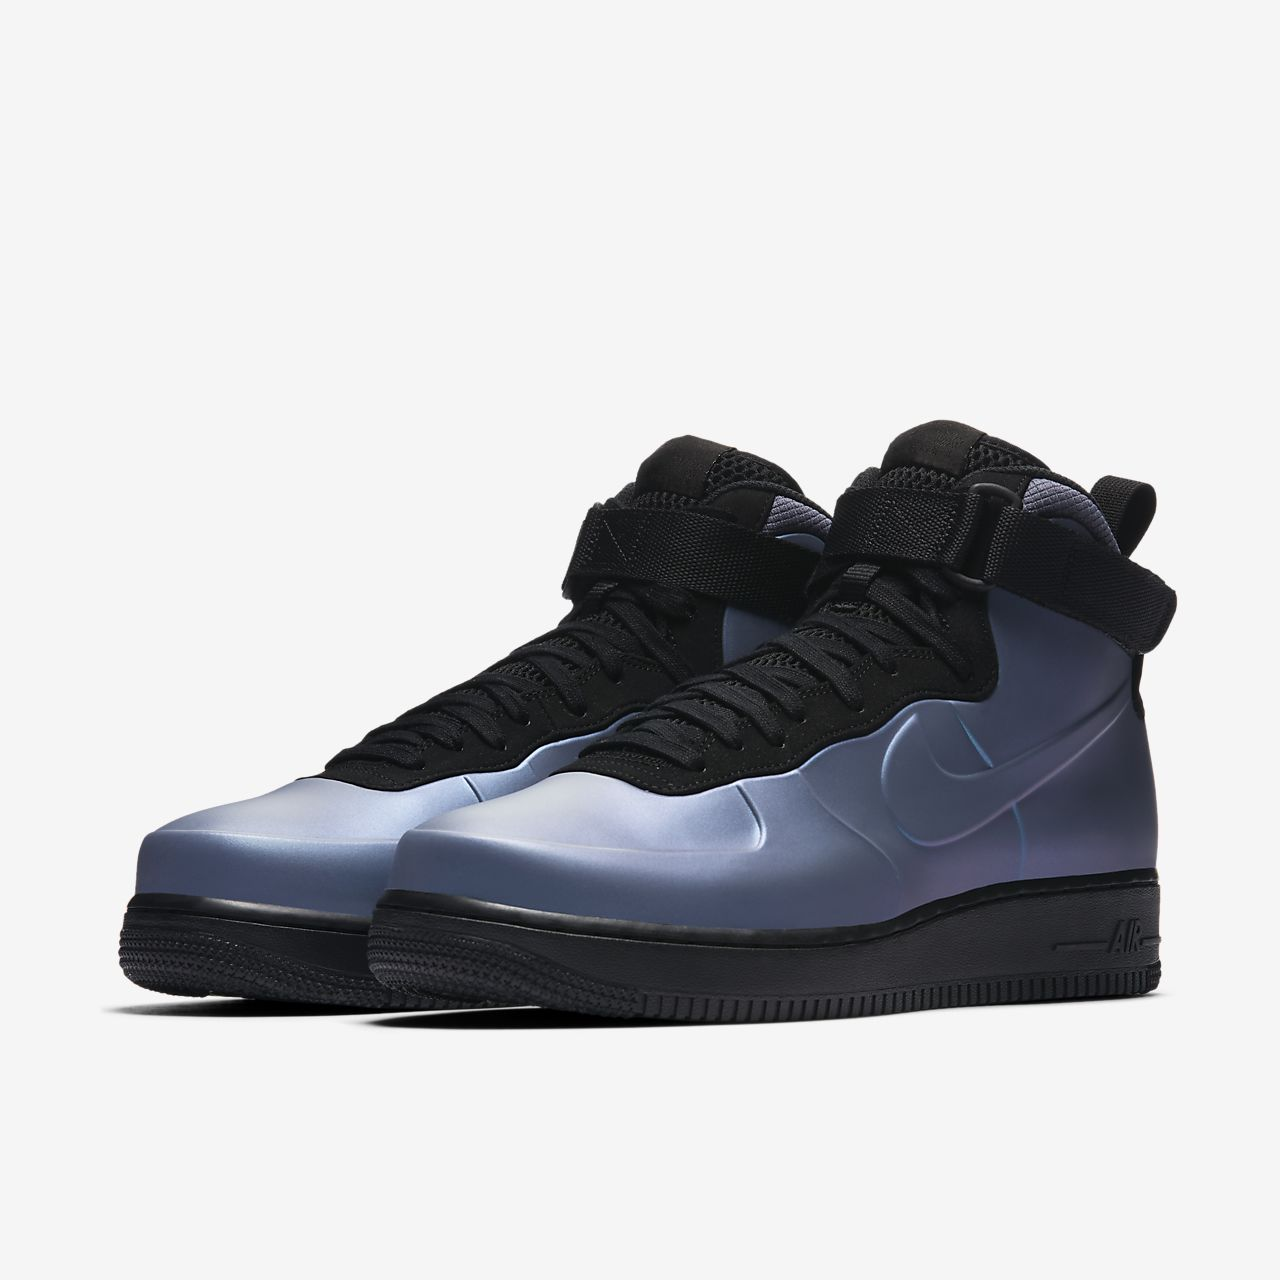 nike air force 1 uomo verdi